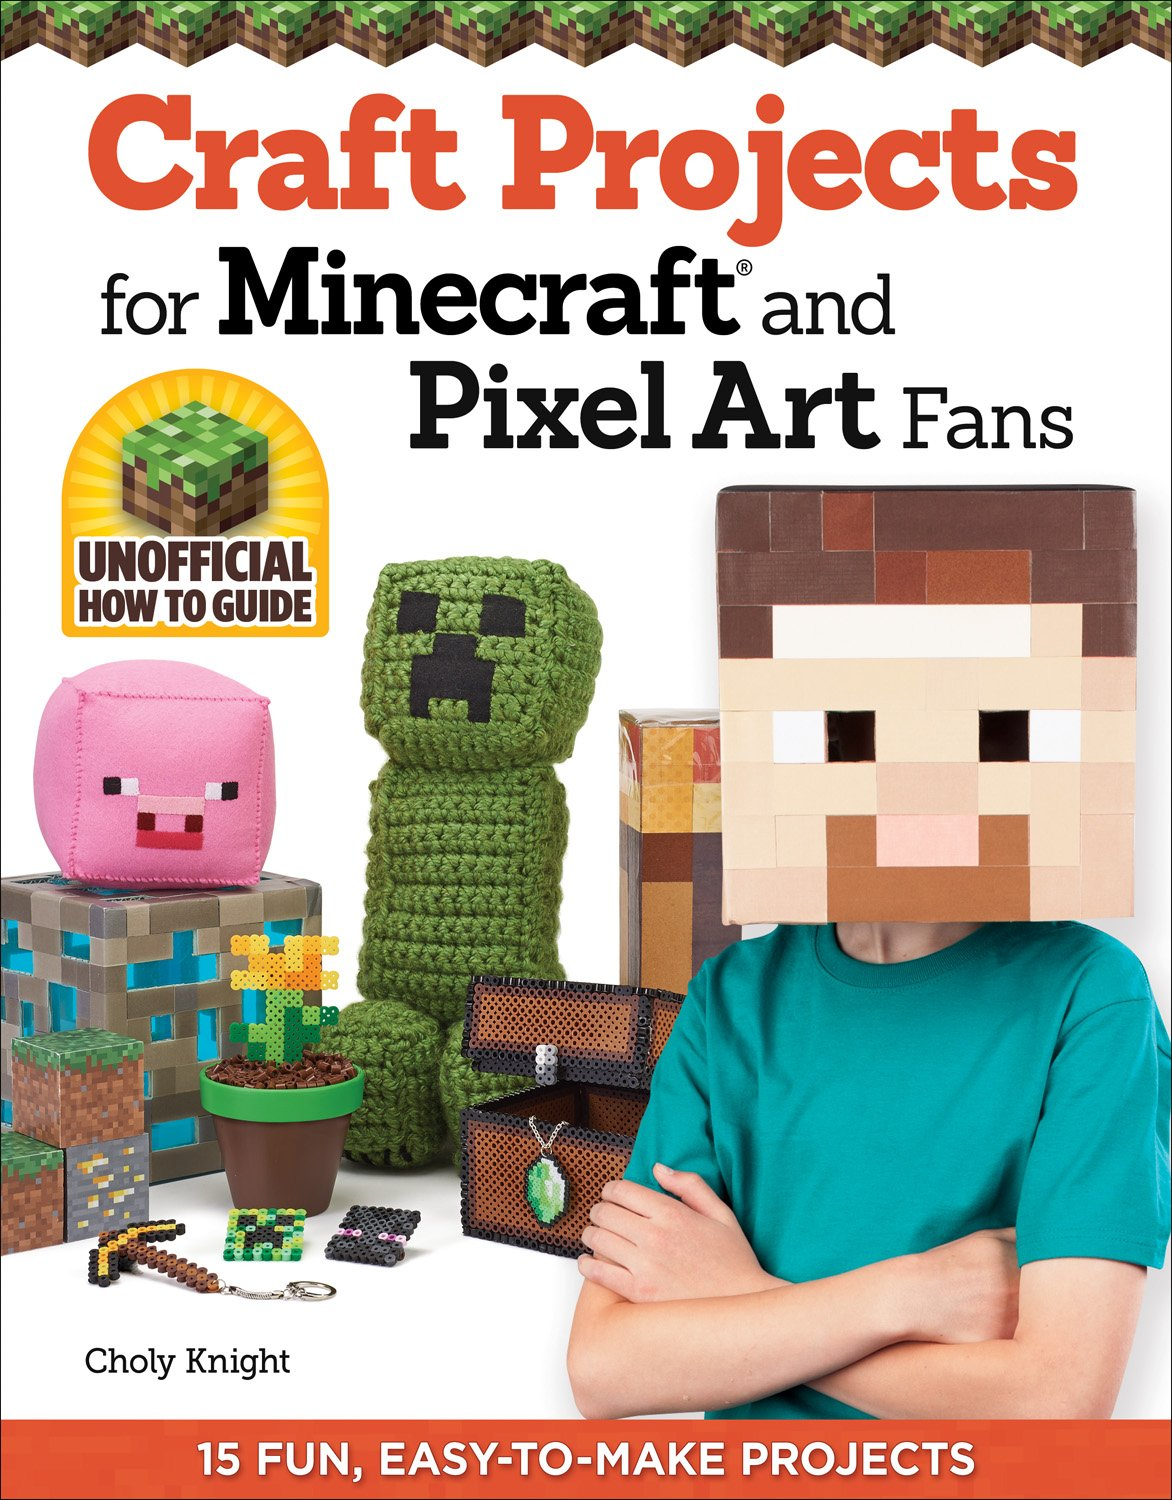 Craft Projects For Minecraft And Pixel Art Fans An Independent Do It Yourself Guide